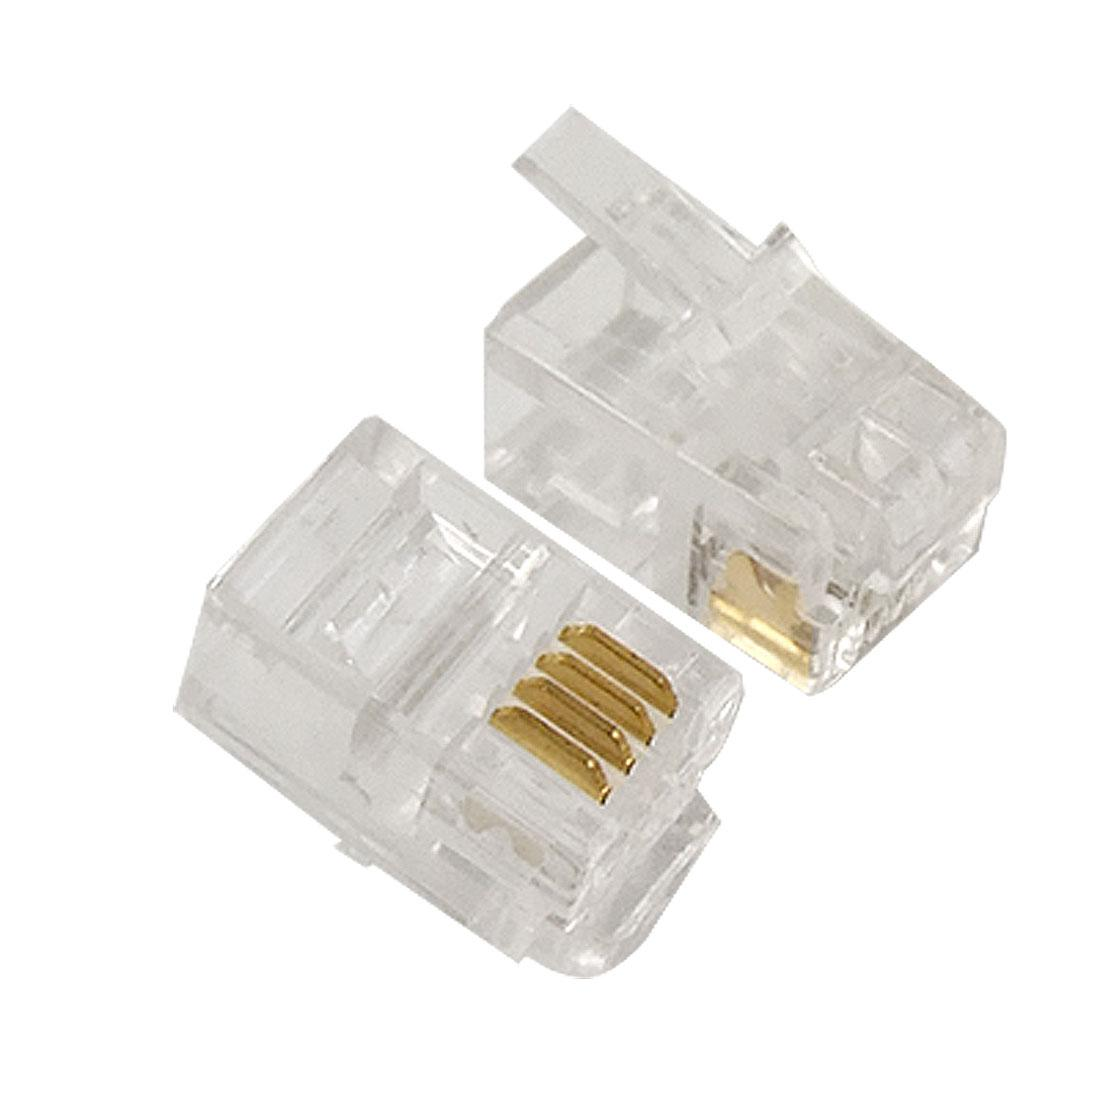 Rj10 Cable Wiring Diagram Library Cat 6 Shielded 4 Pin 4p4c Connector Plug For Handset Nvbcu Patch Cables Pc And Connectors